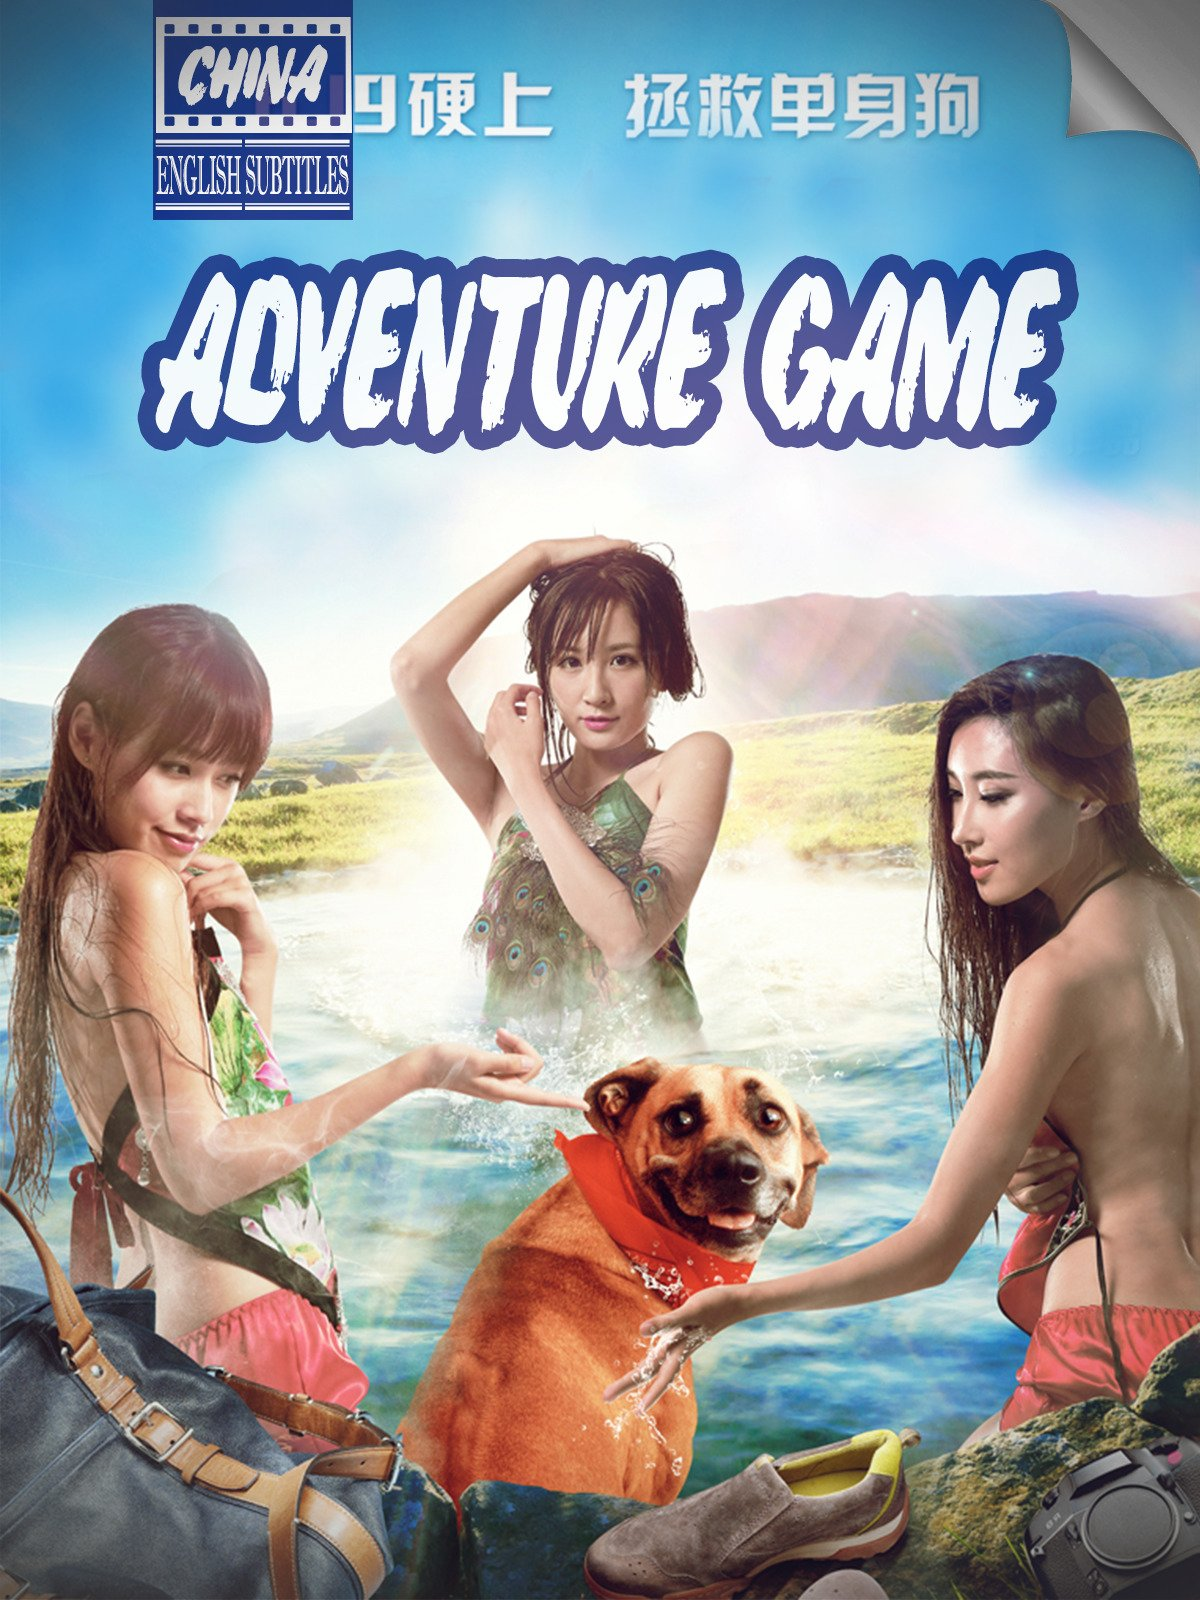 Adventure Game (english subtitles) China